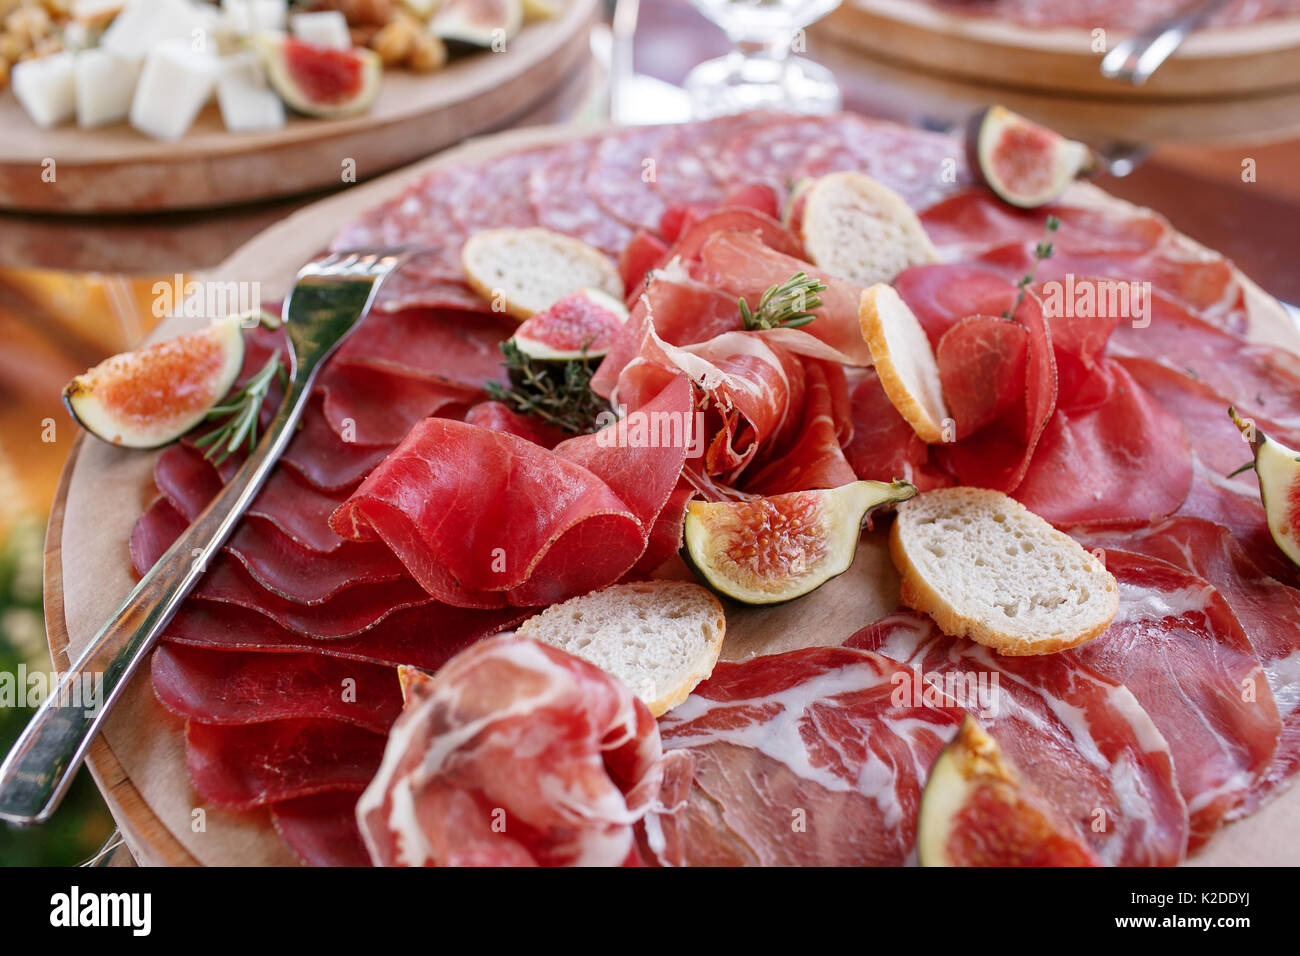 Italian antipasti and appetizers. board with slices prosciutto, salami, dried pork, salami ham with herbs. - Stock Image